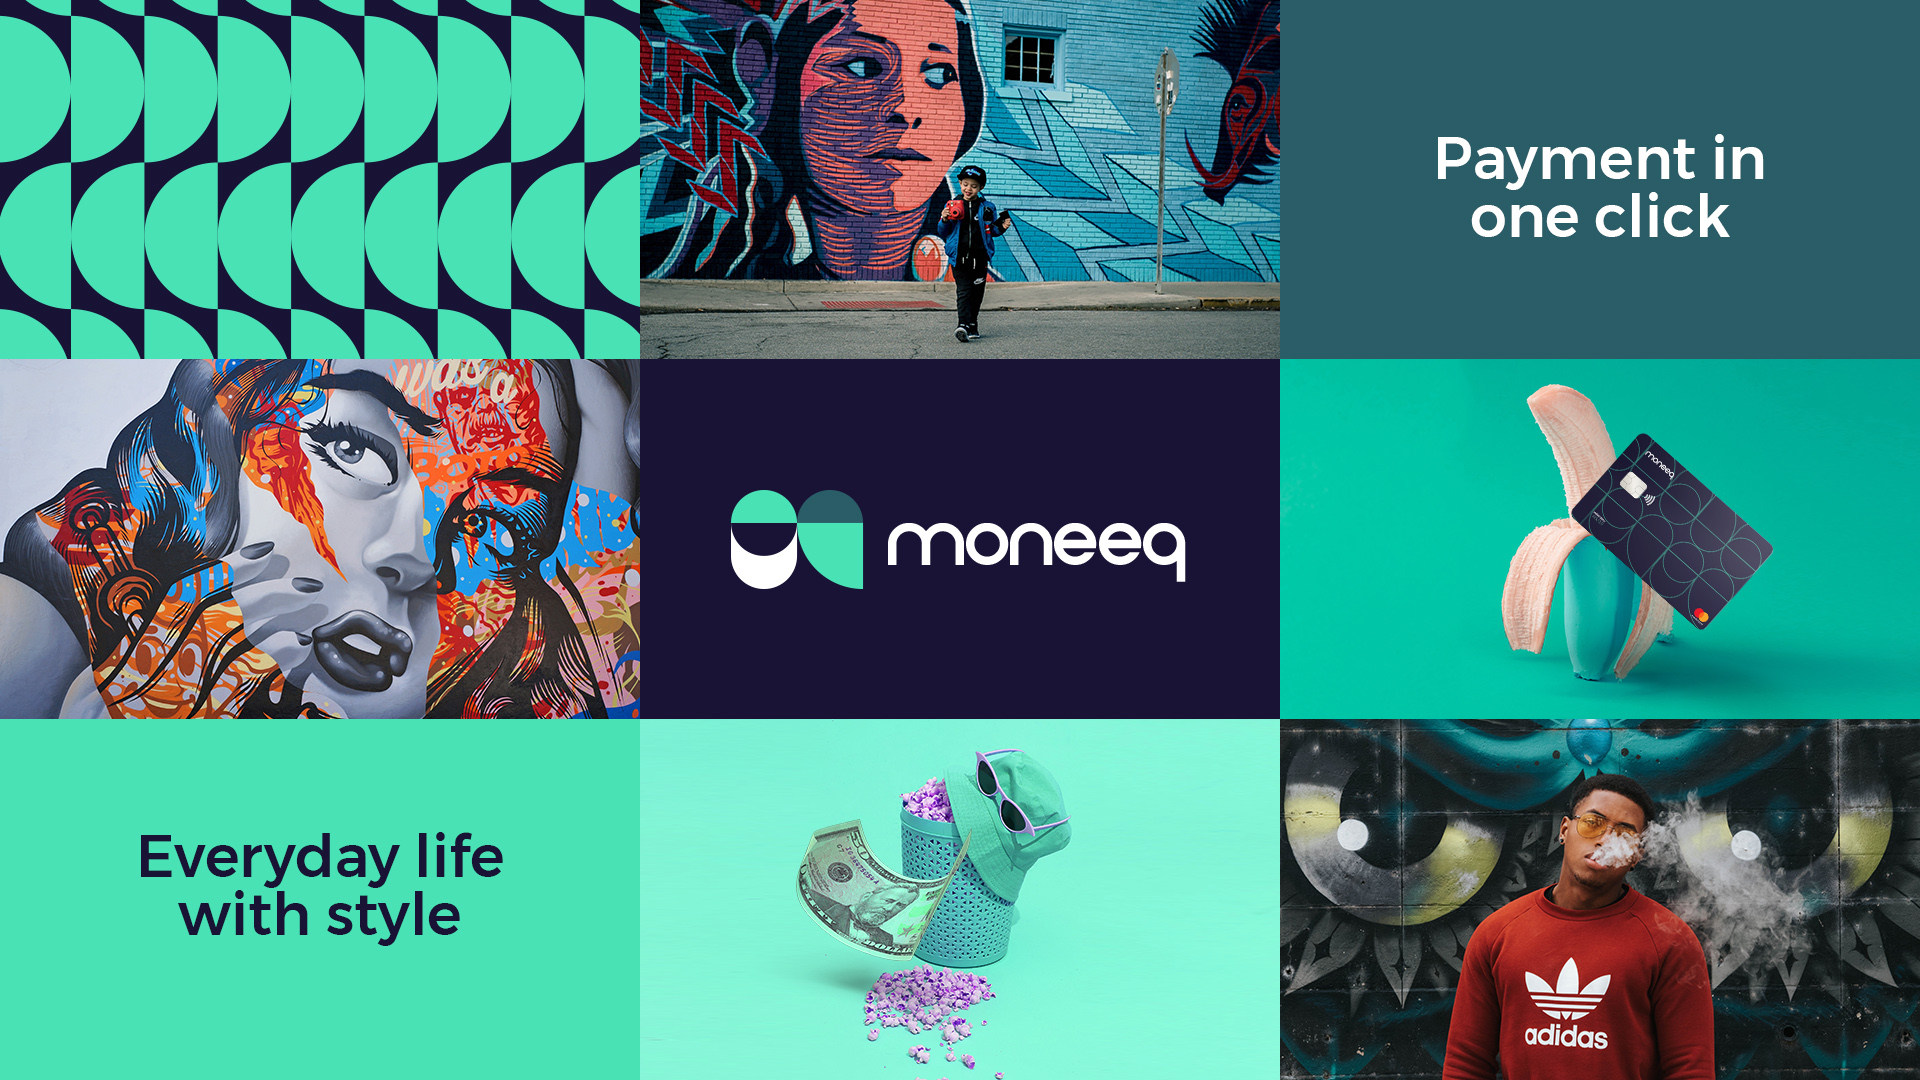 Moneeq Fintech Neobank From Singapore Branding by Vinille